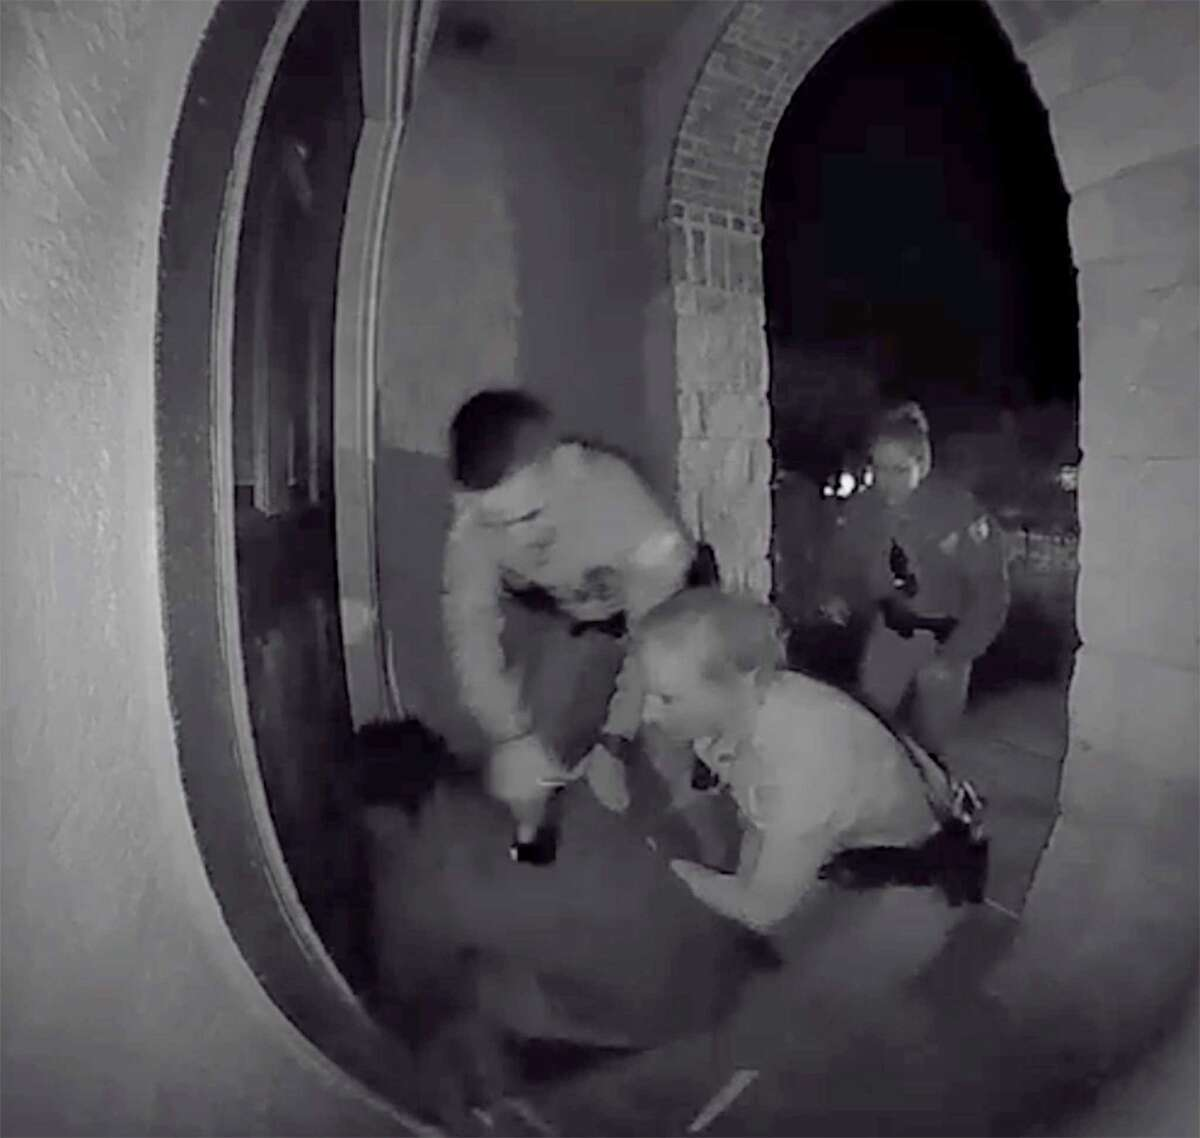 A screen grab from a home surveillance video shows Schertz police officers tasing and forcibly restraining Zekee Rayford, 18, on the front steps of his home.